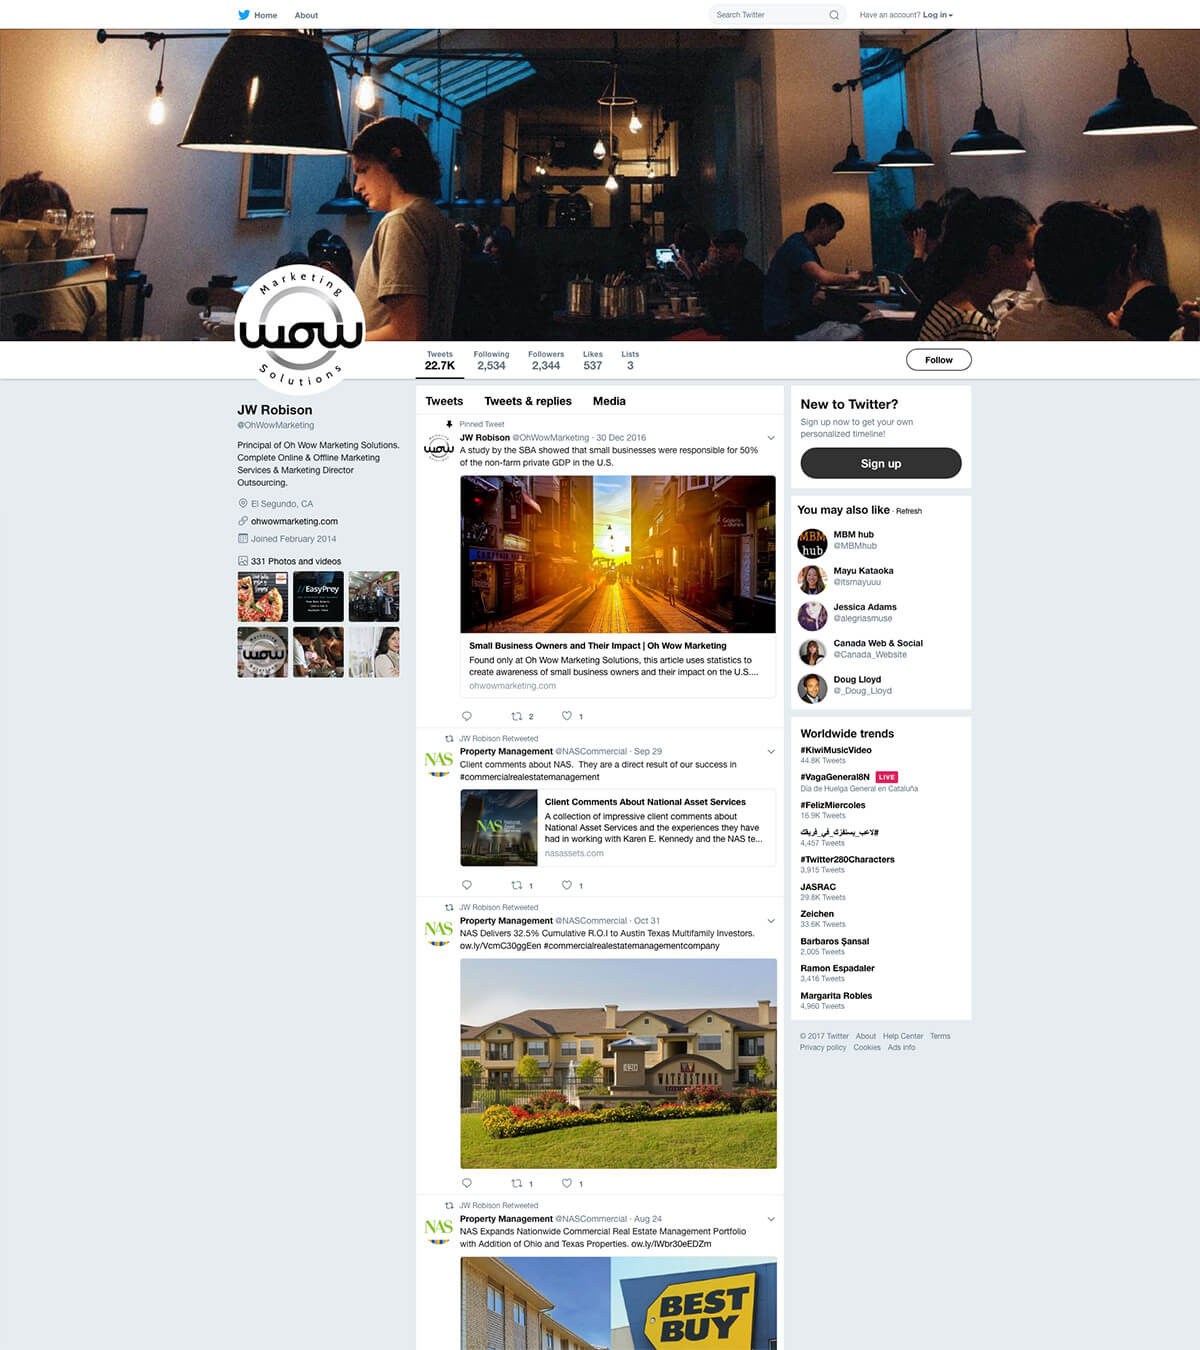 Twitter Page Oh Wow Marketing